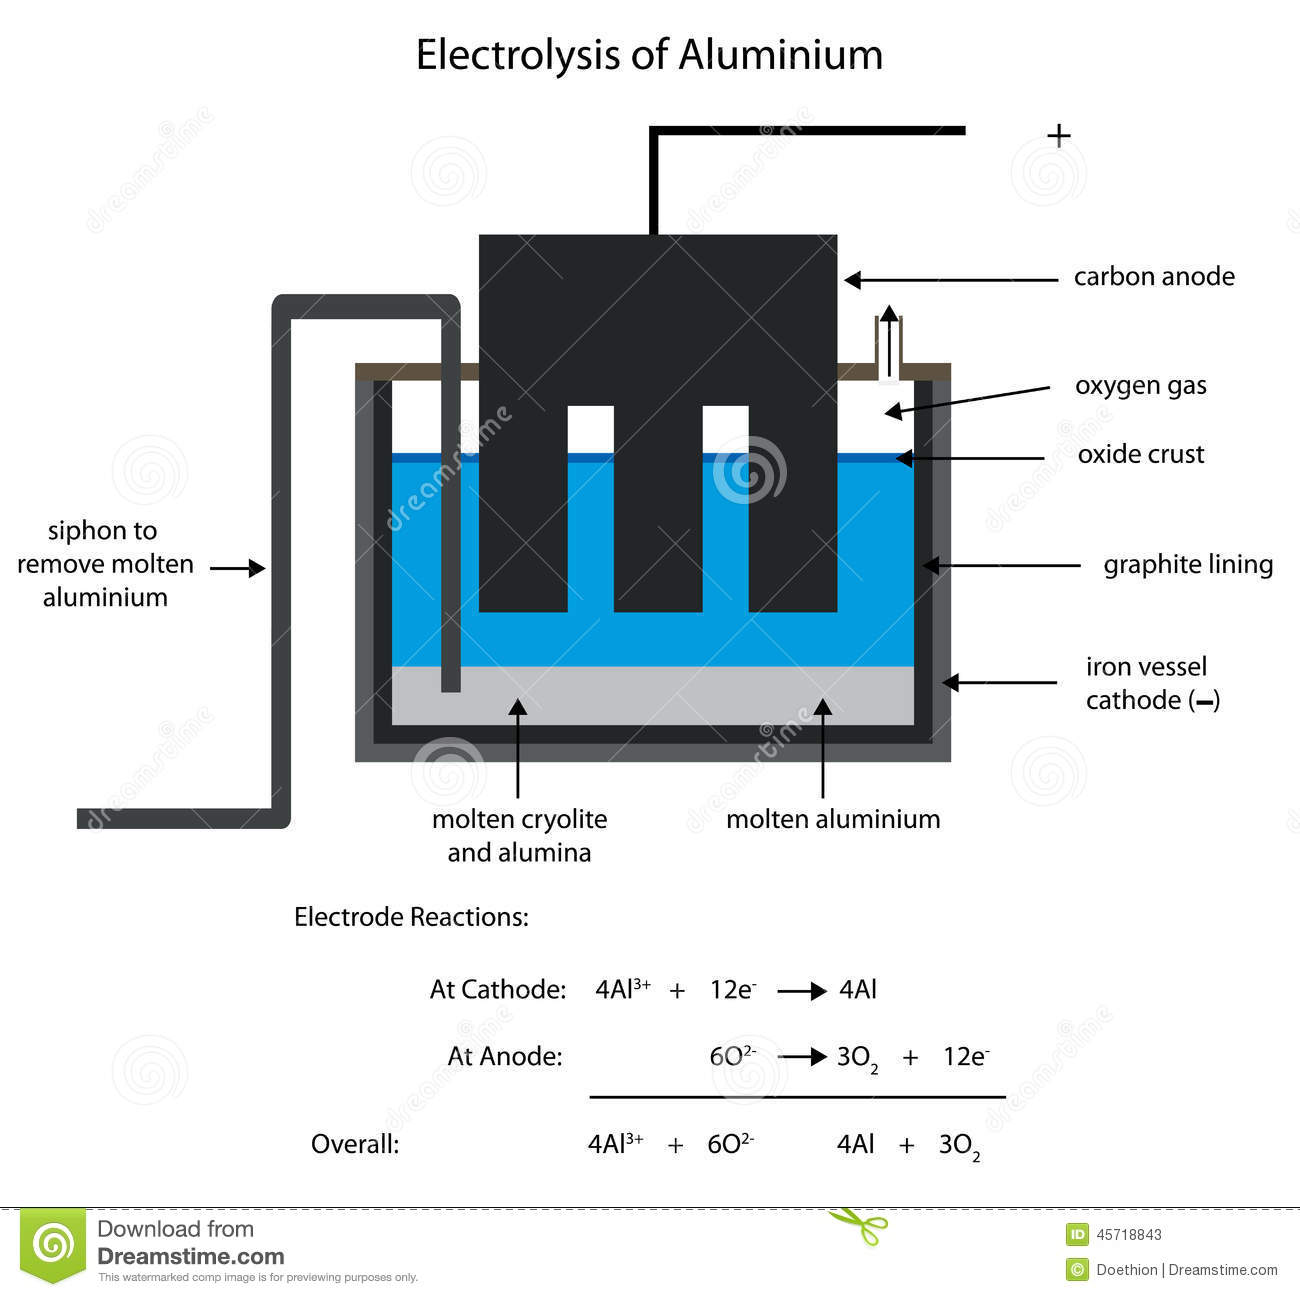 Search additionally Electrolysis also Labelled Diagram Of Plant Palisade Cell Gg72420472 in addition Oxidation reduction besides Stock Illustration Aluminium Smelting Electrolysis Editable Labelled Diagram Image45718843. on stock illustration electrolysis process diagram